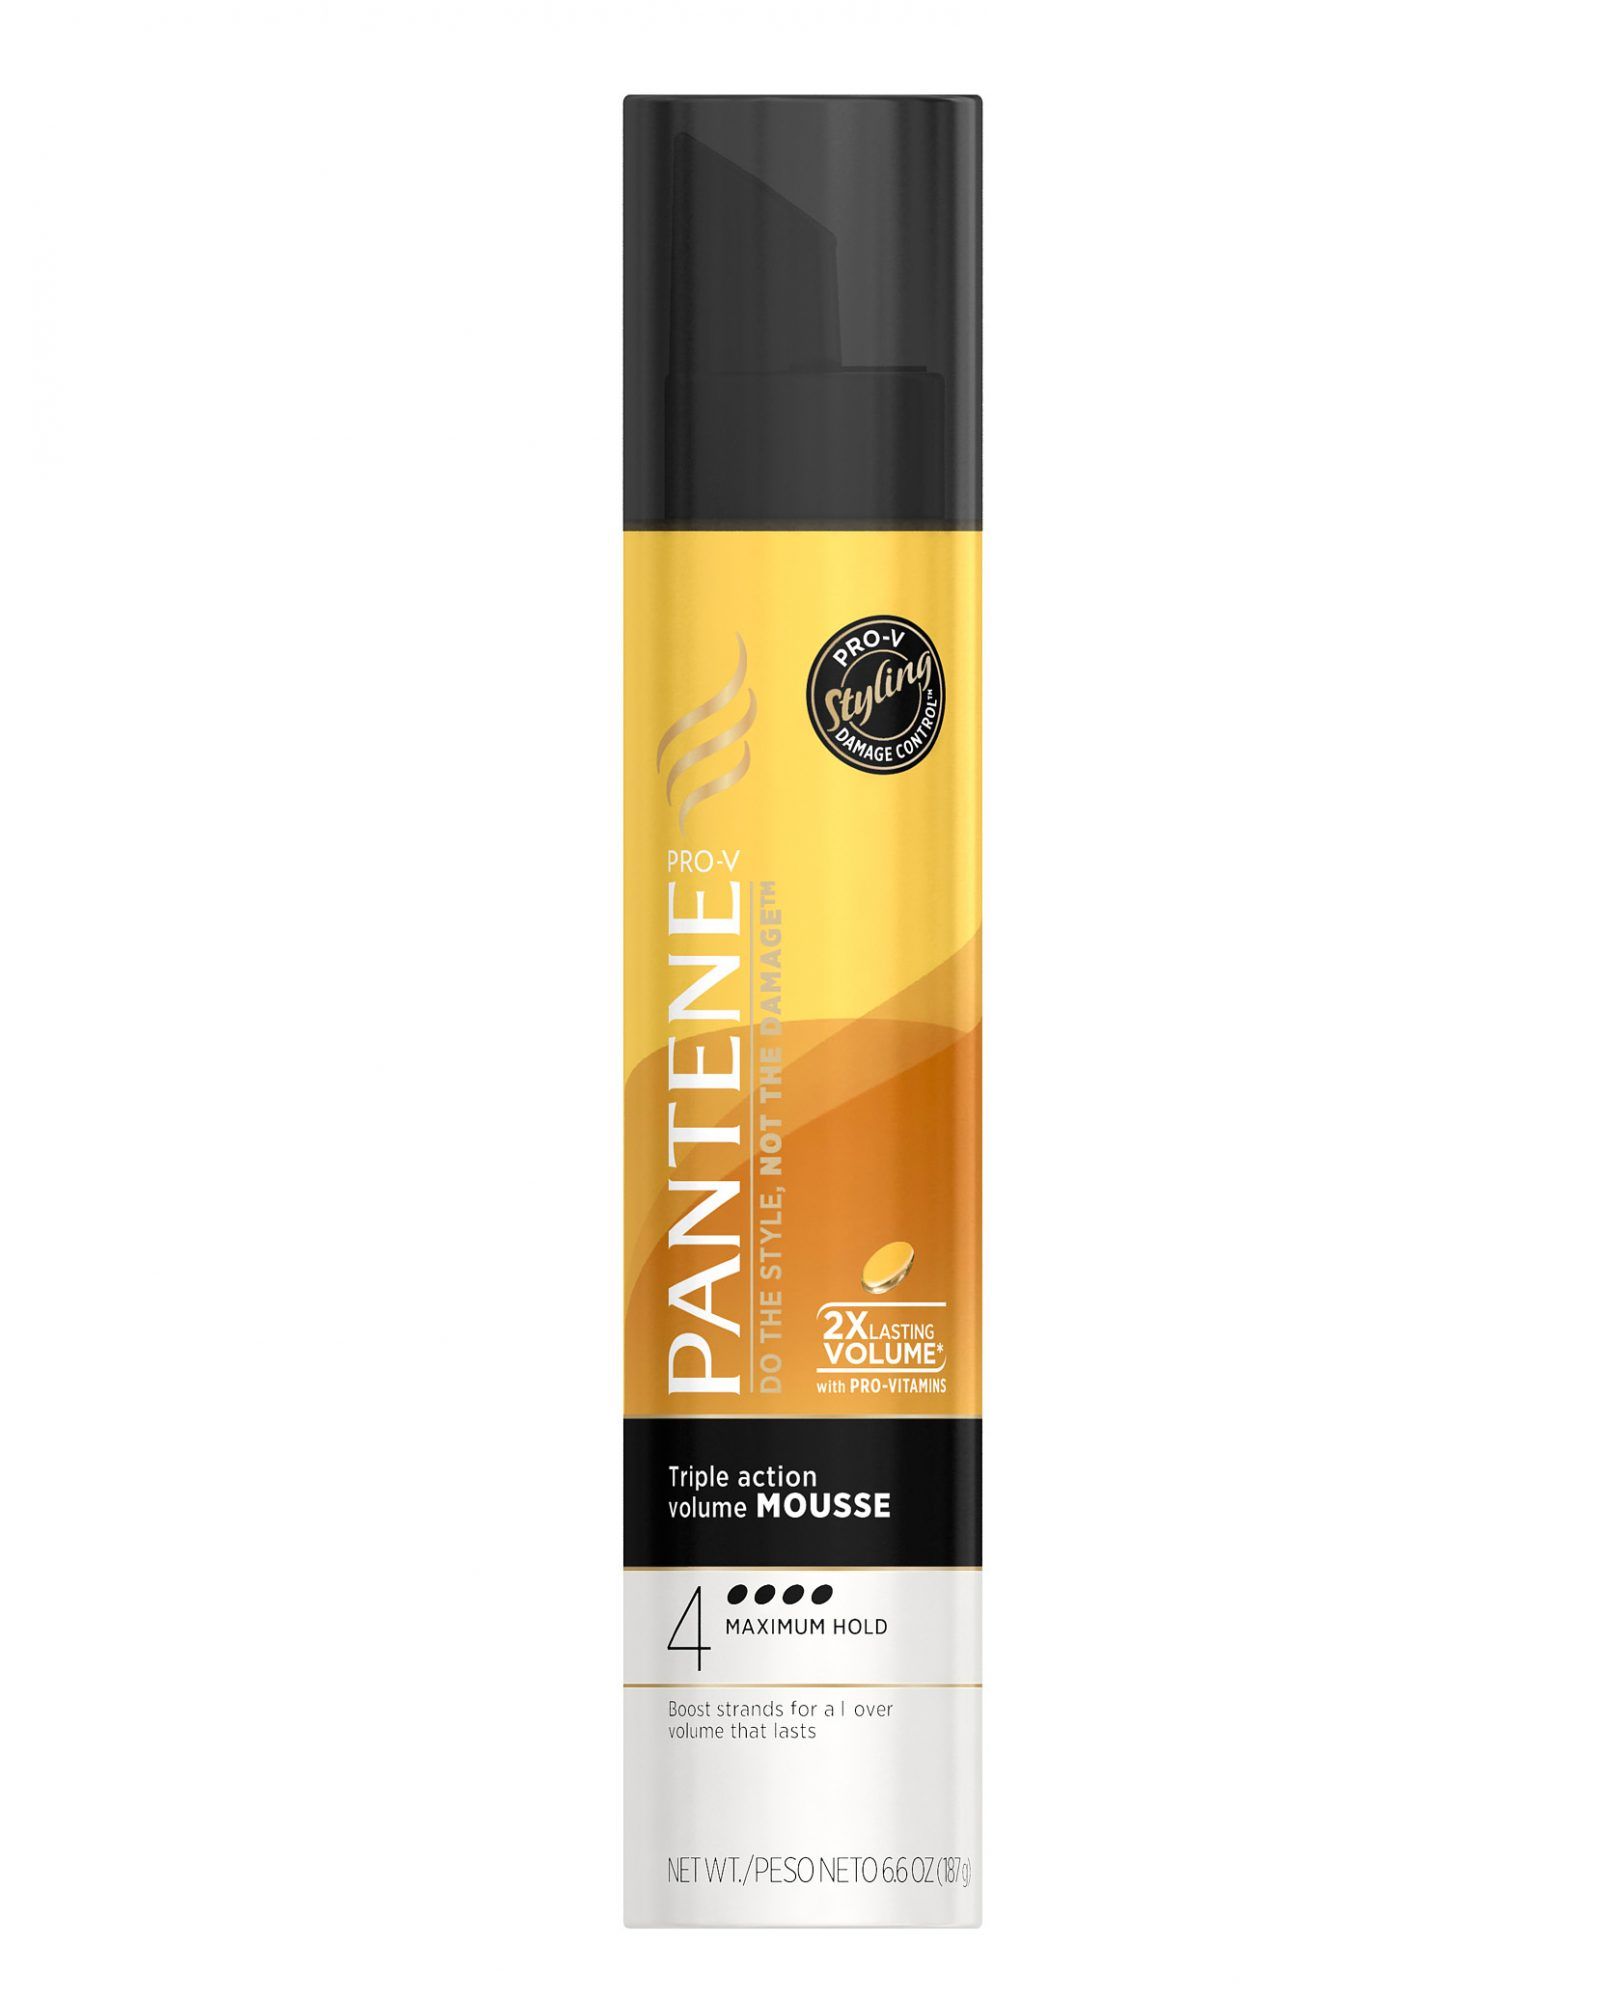 pantene-prov_triple-action-volume-mousse-maximum-hold-0314.jpg